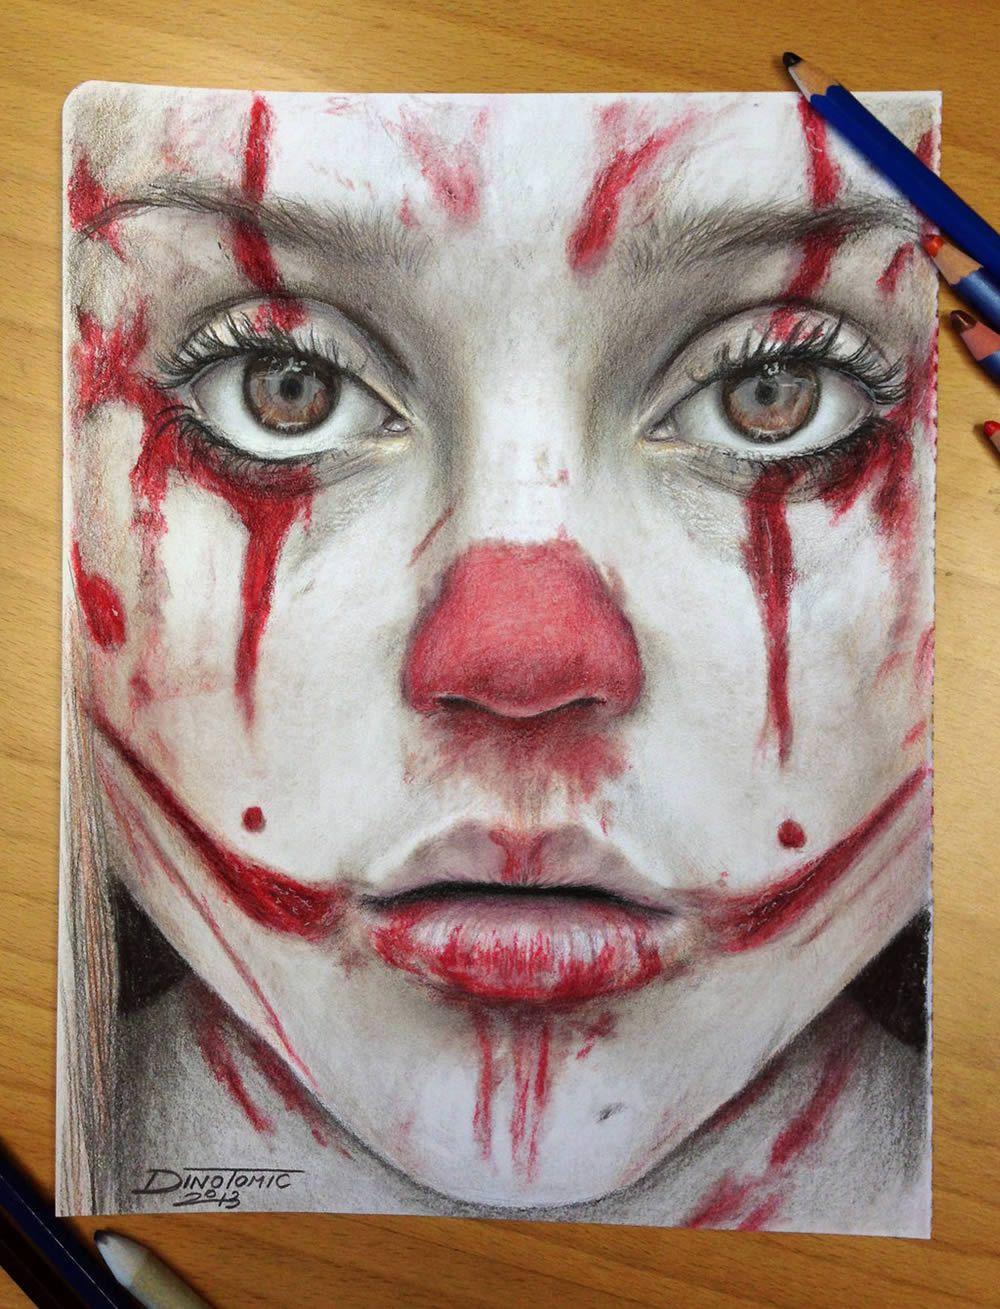 A Clown And Eyeballs Color Pencil Drawing Cool Pencil Drawings Pencil Drawings